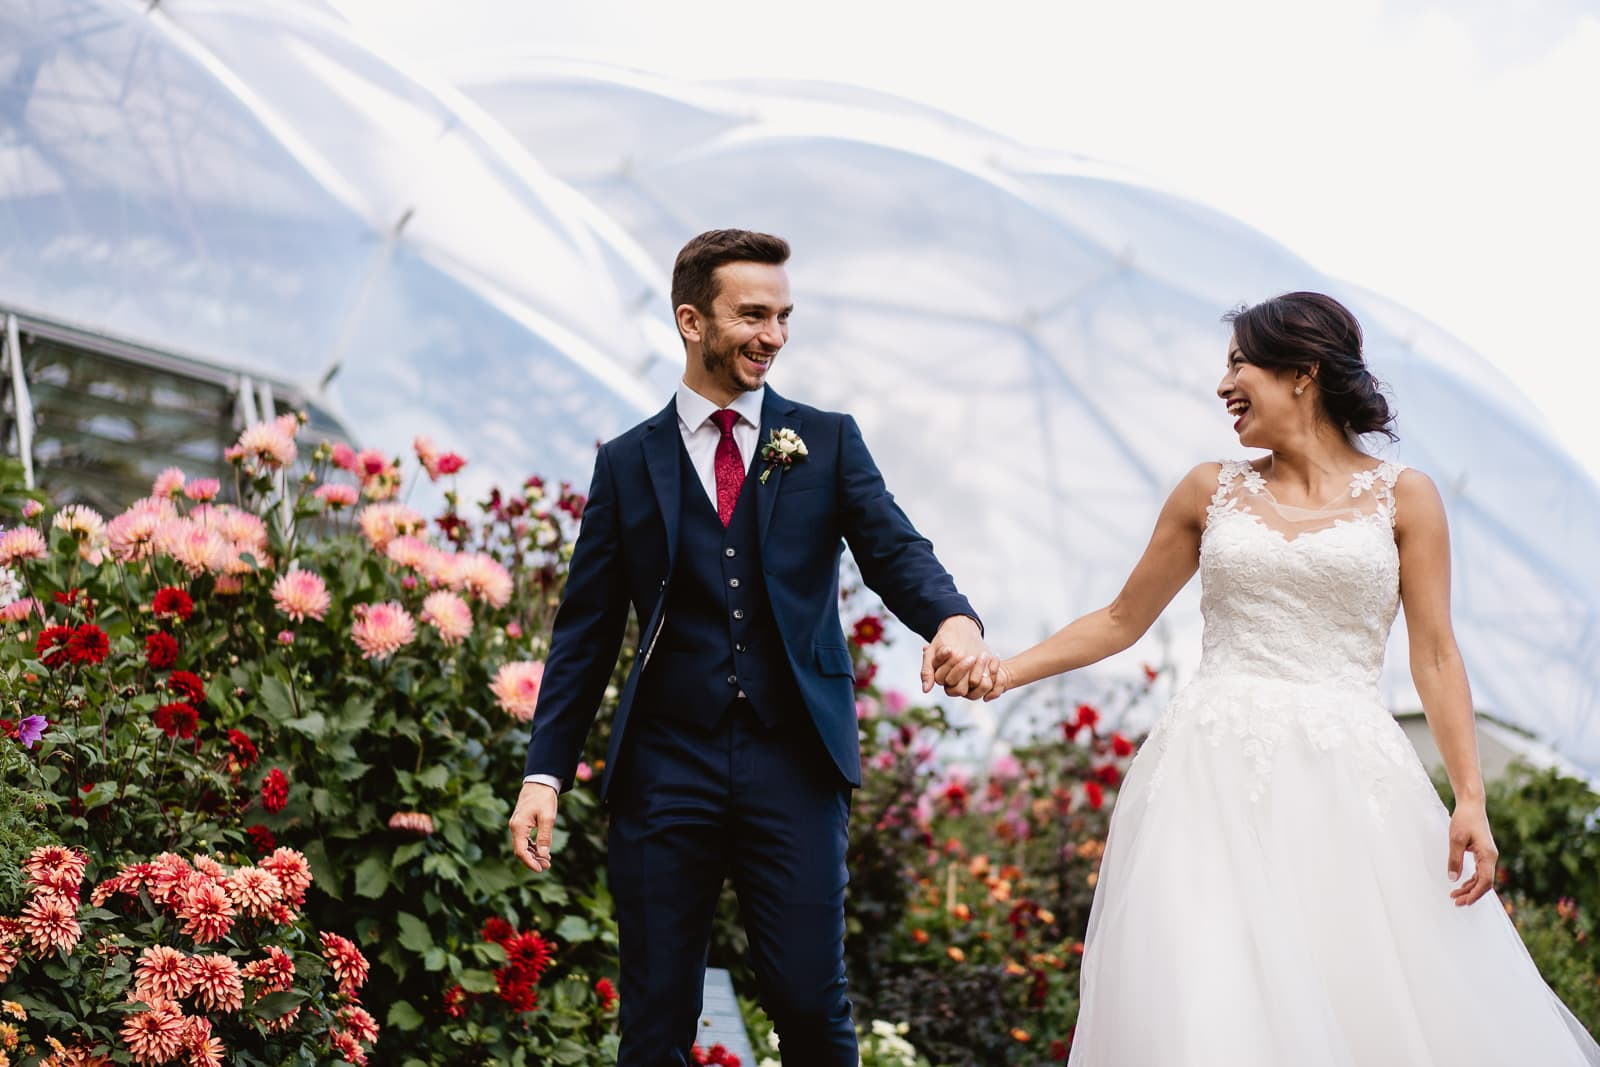 Wedding images from the Eden Project in Cornwal